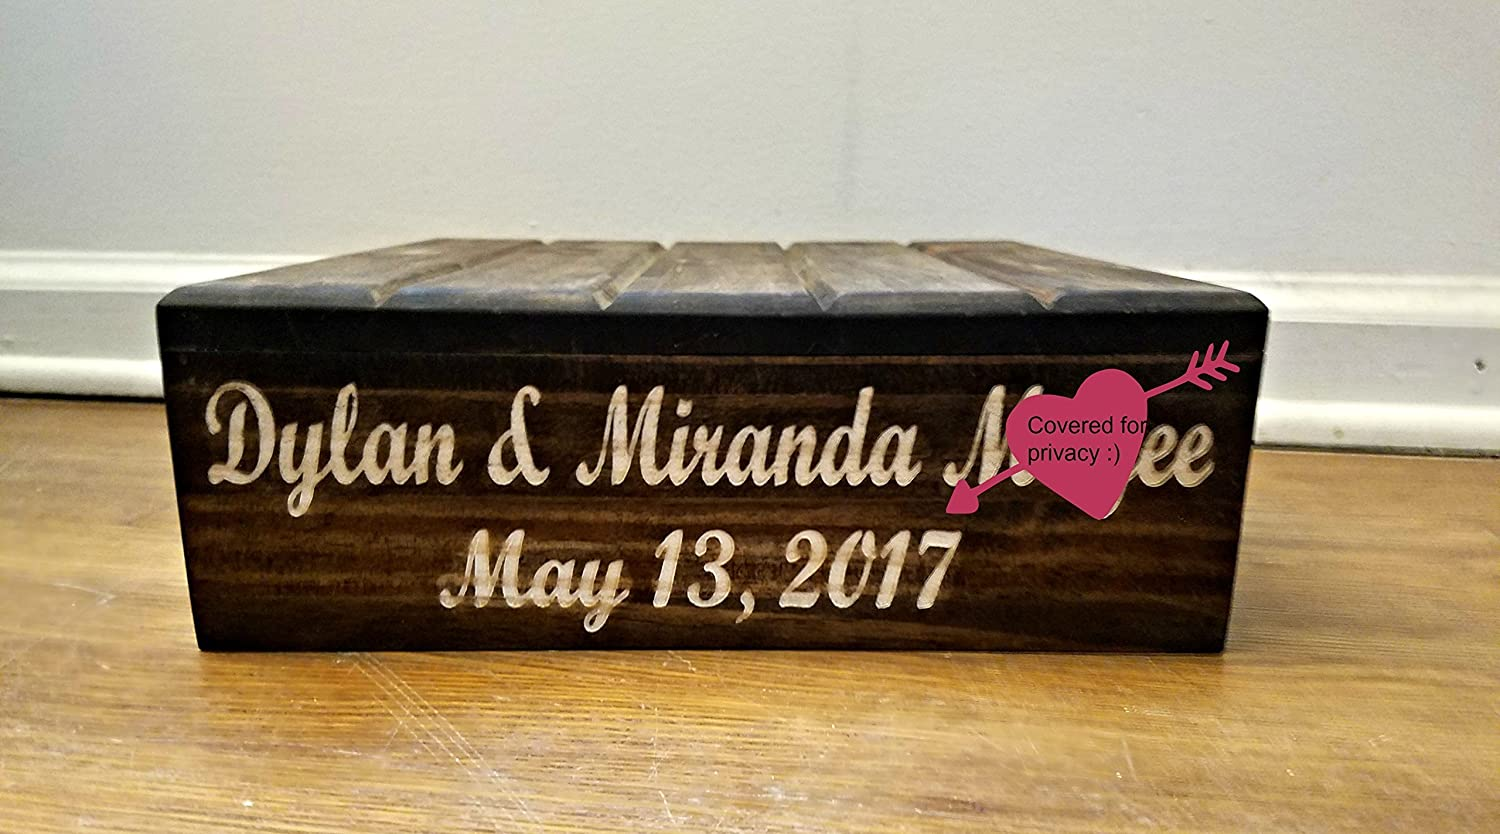 Custom Cake Stand, Wedding Name and Date, Customized cake stand, Wedding Cake Stand, Custom cake stand, Reclaimed cake stand,Personalized cake stand, Rustic Cake Stand, Country Wedding